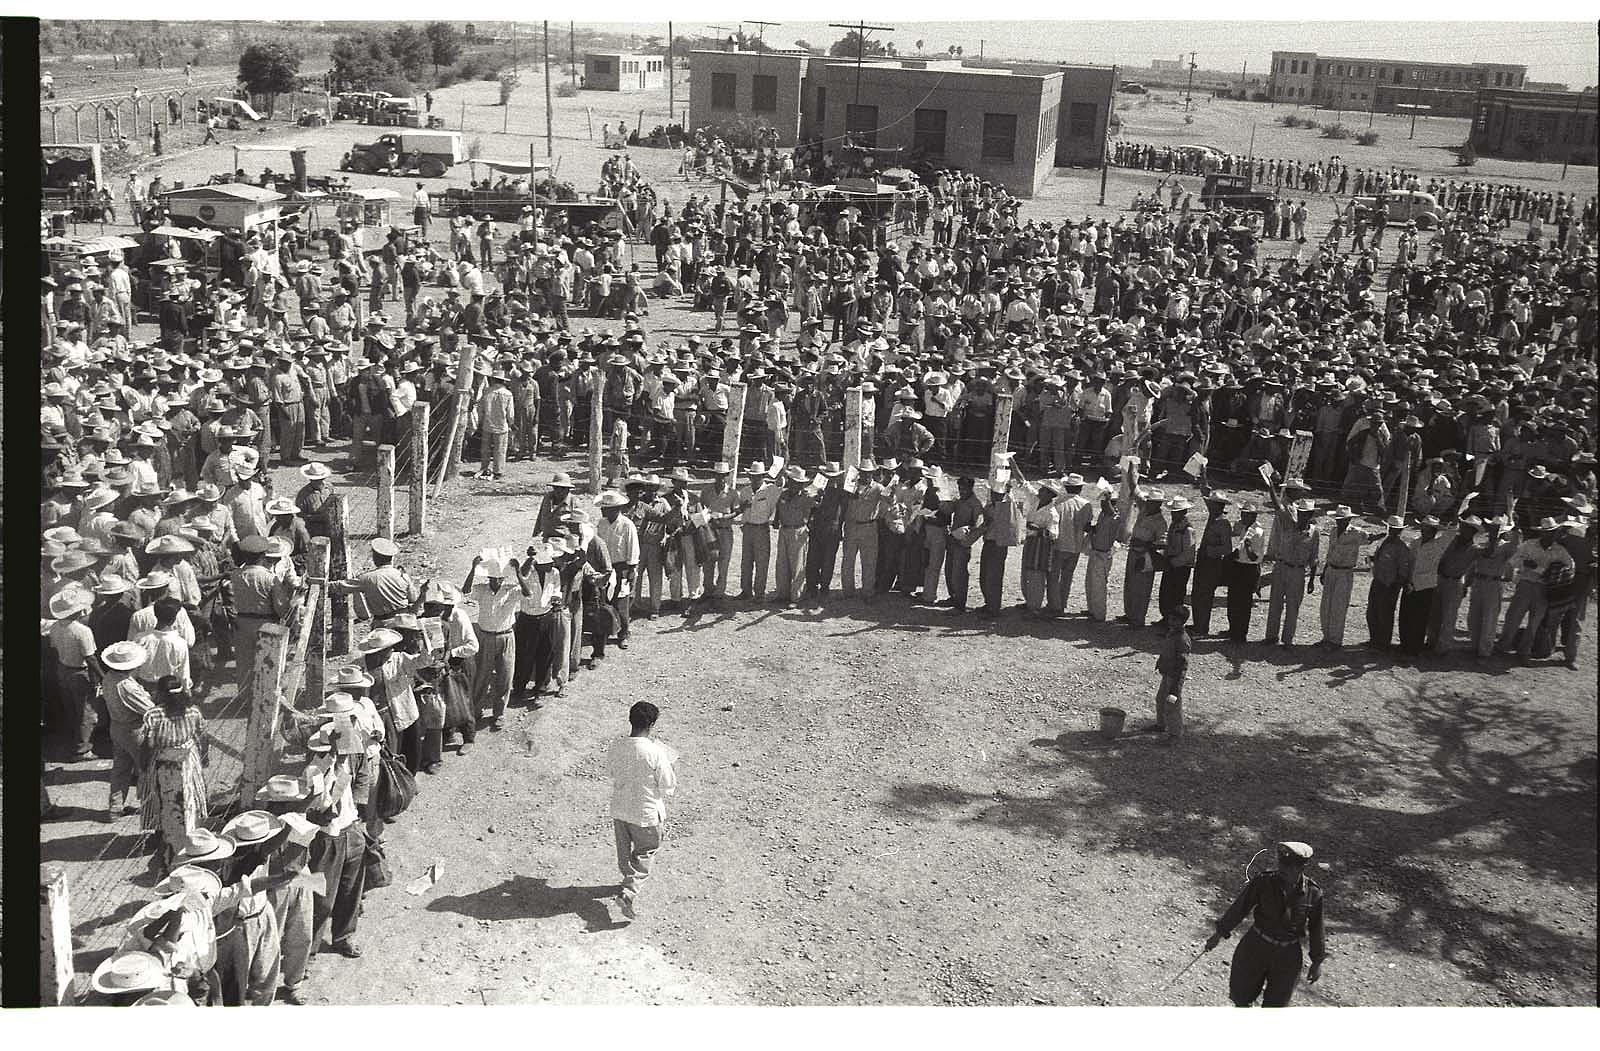 Supervised by an armed guard braceros wait in line to be processed through the Monterrey Processing Center, Mexico while others wait outside the barbed wire enclosure.